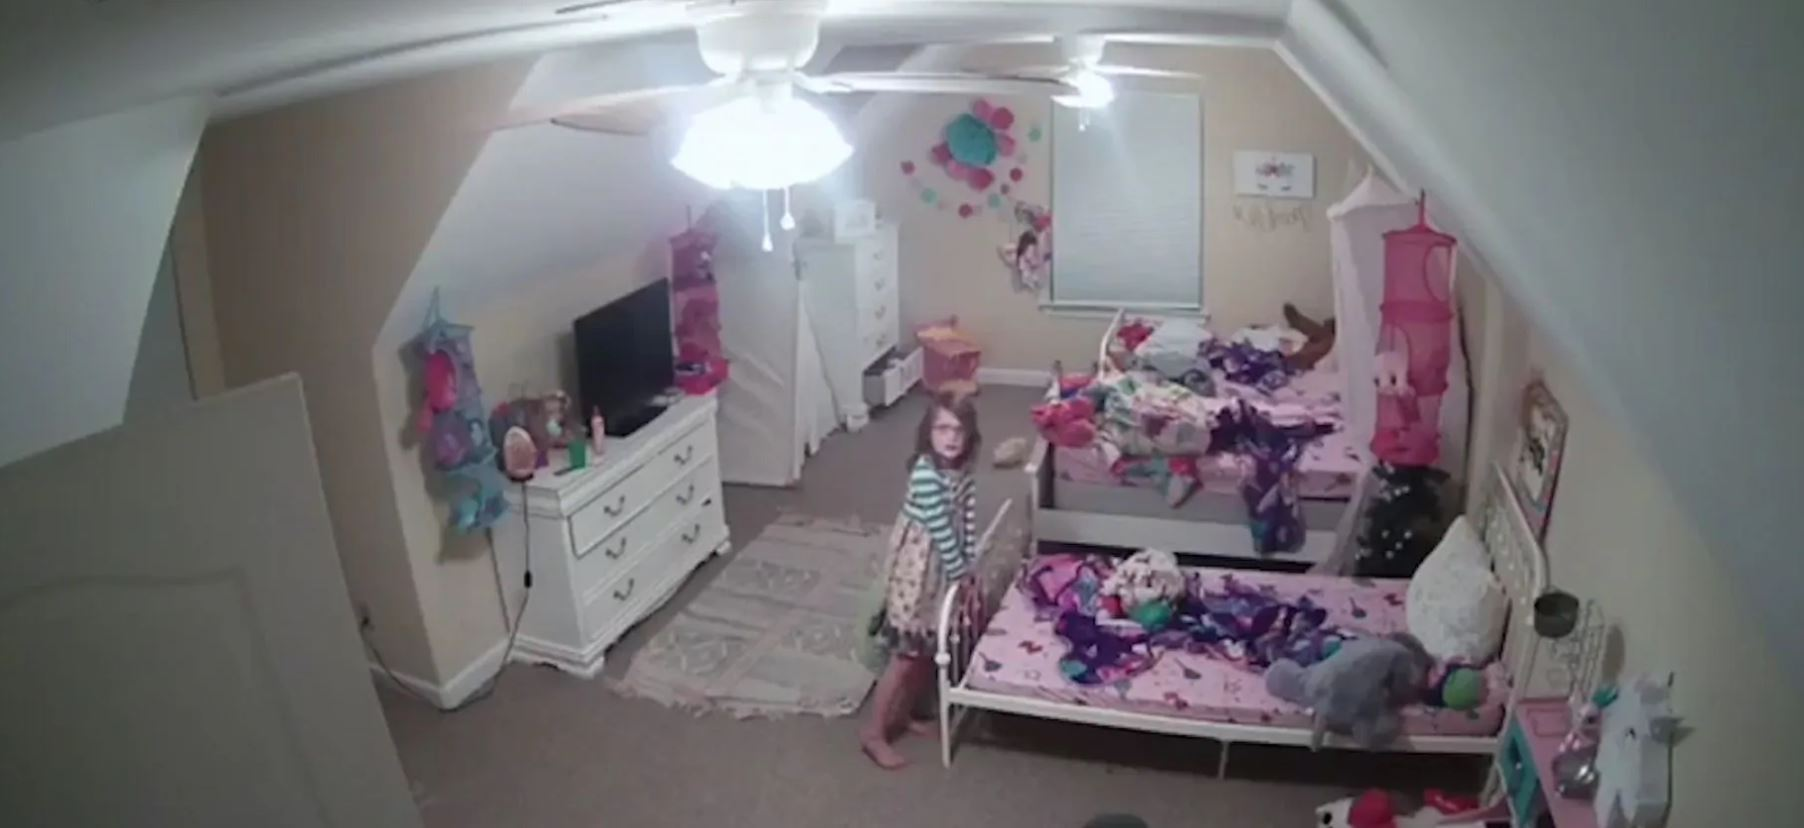 Chilling exchange shows hacker harassing 8-year-old girl in bedroom